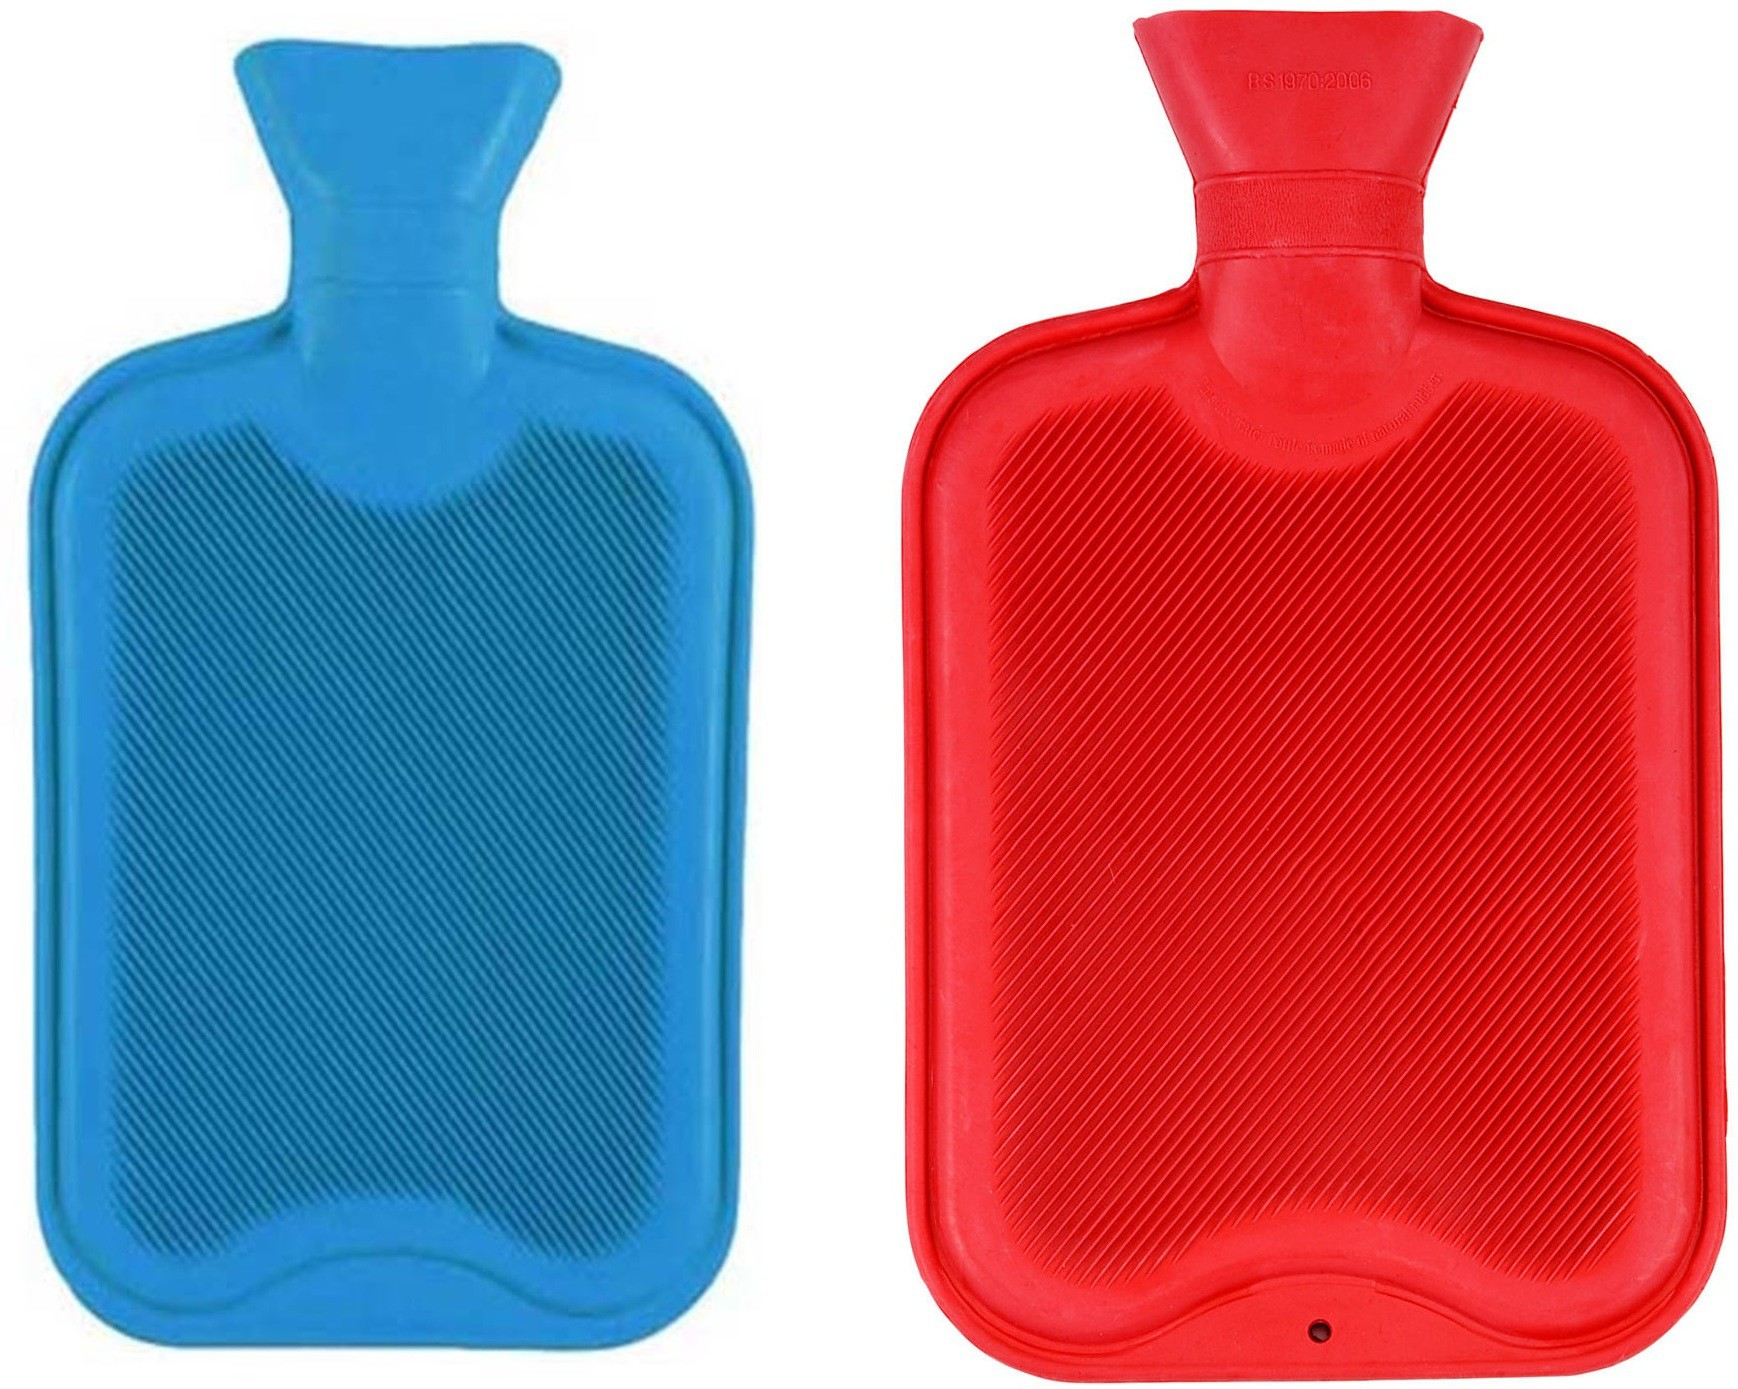 Ramco Combo Deluxes Non-electrical 3 L Hot Water Bag(Blue, Red)